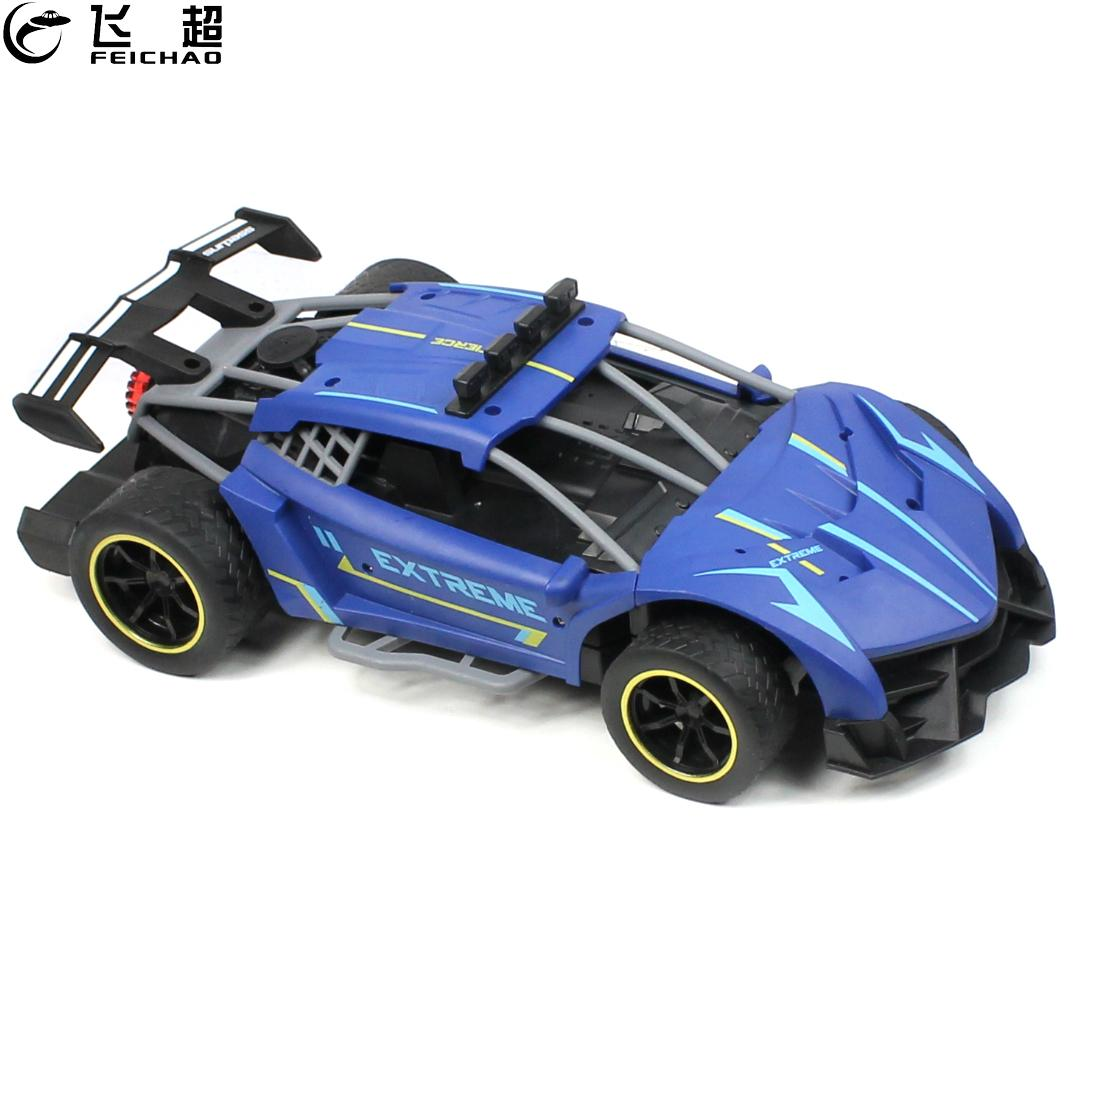 FEICHAO 1:12 RC Car High-speed 4WD 2.4G Electric Car with Remote Controller RC Off-Road Car Gift for